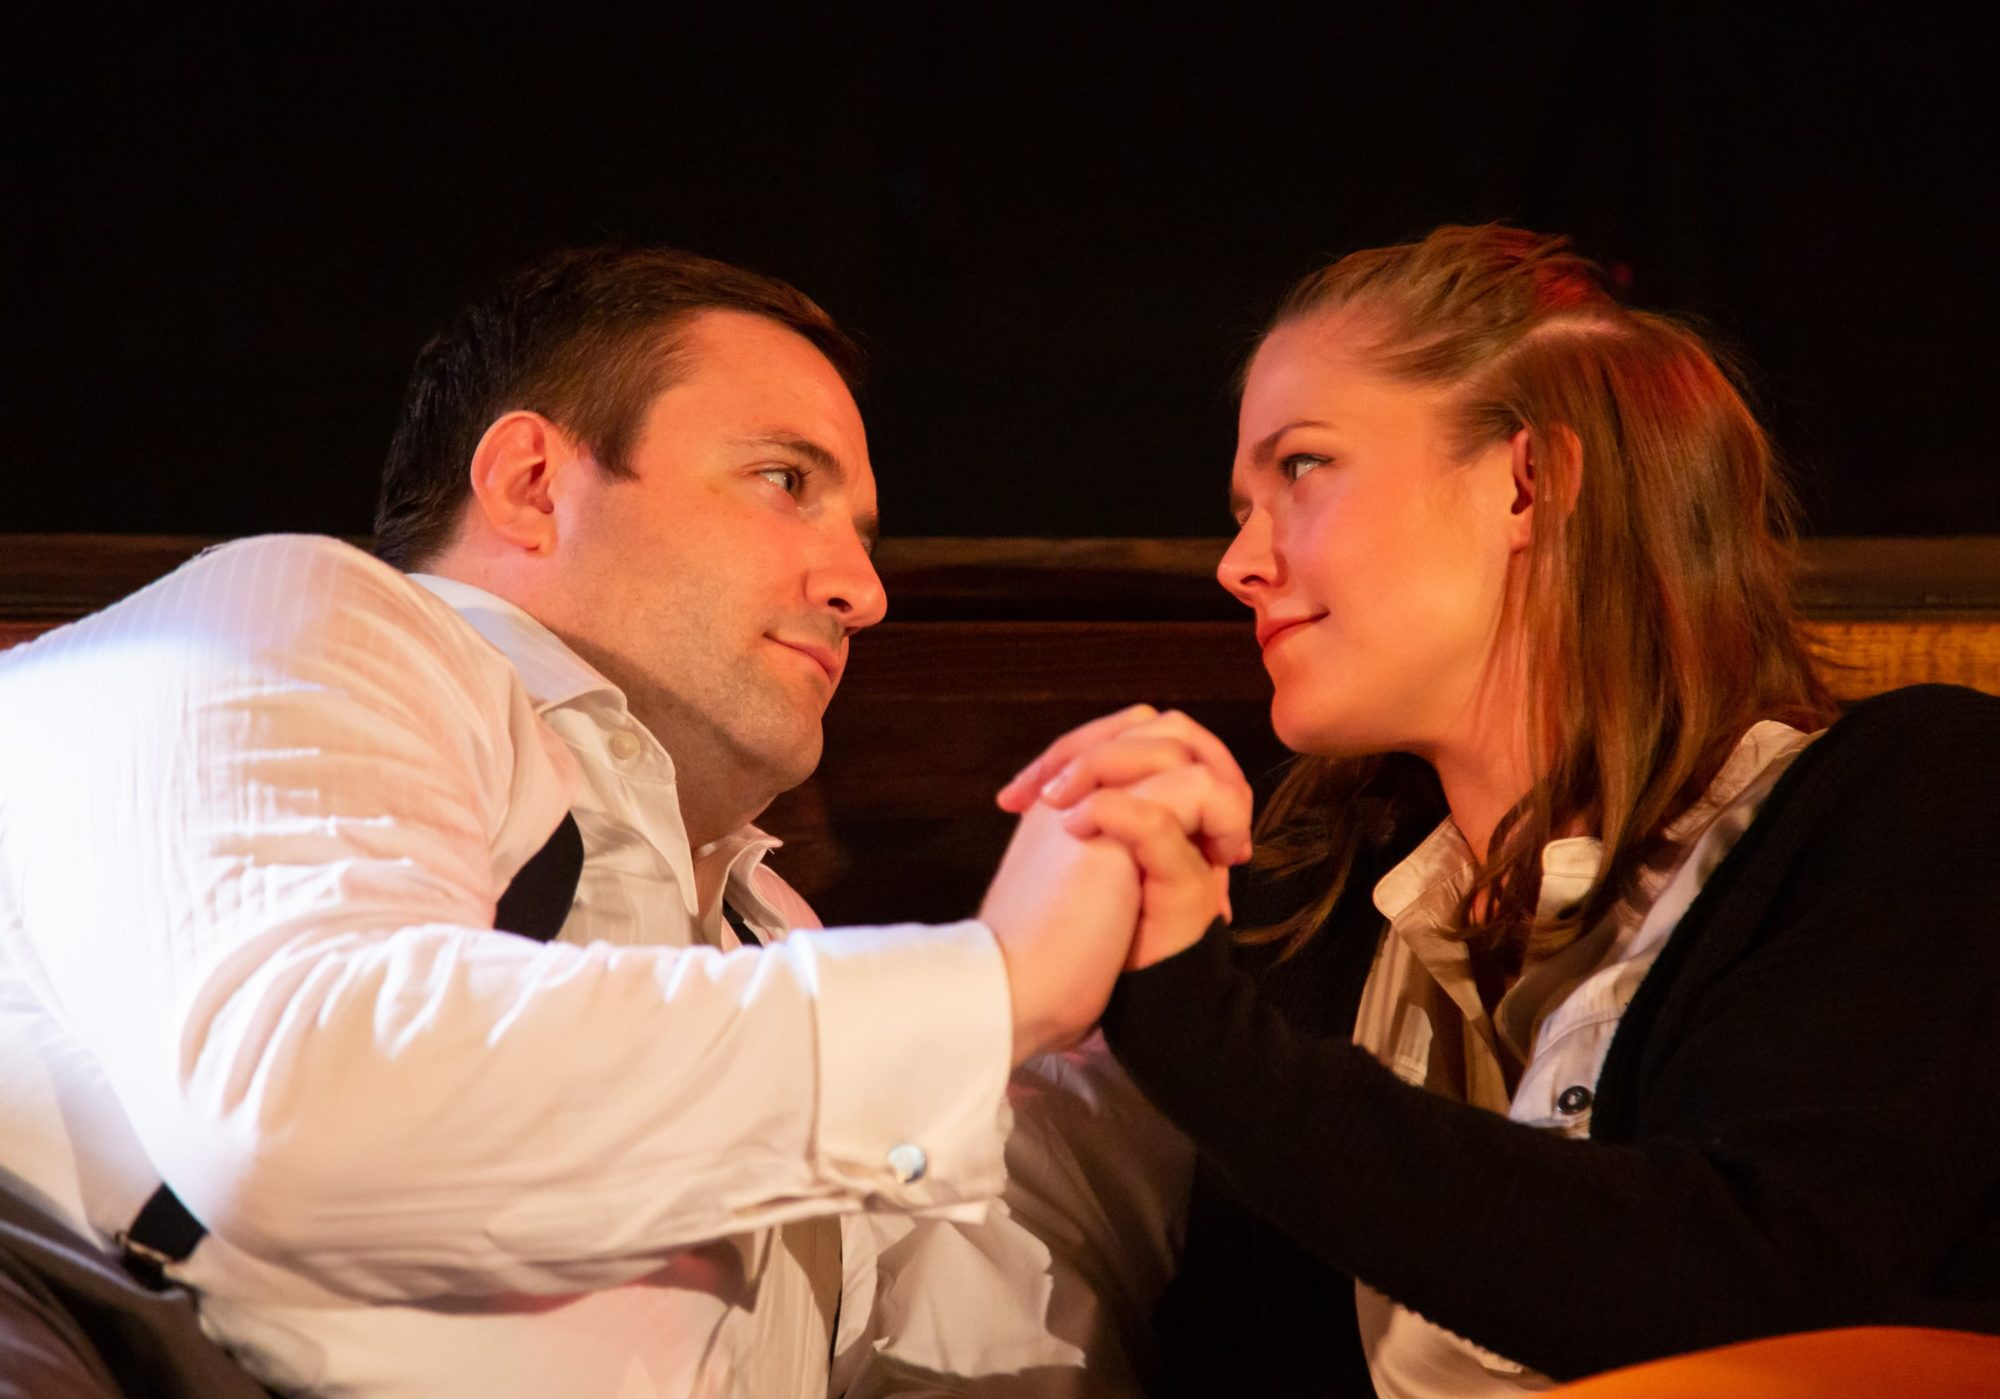 Matt Dewberry as Jerry and Caroline Dubberly as Emma in 'Betrayal' by 4615 Theatre Company. Photo by Ryan Maxwell Photography.